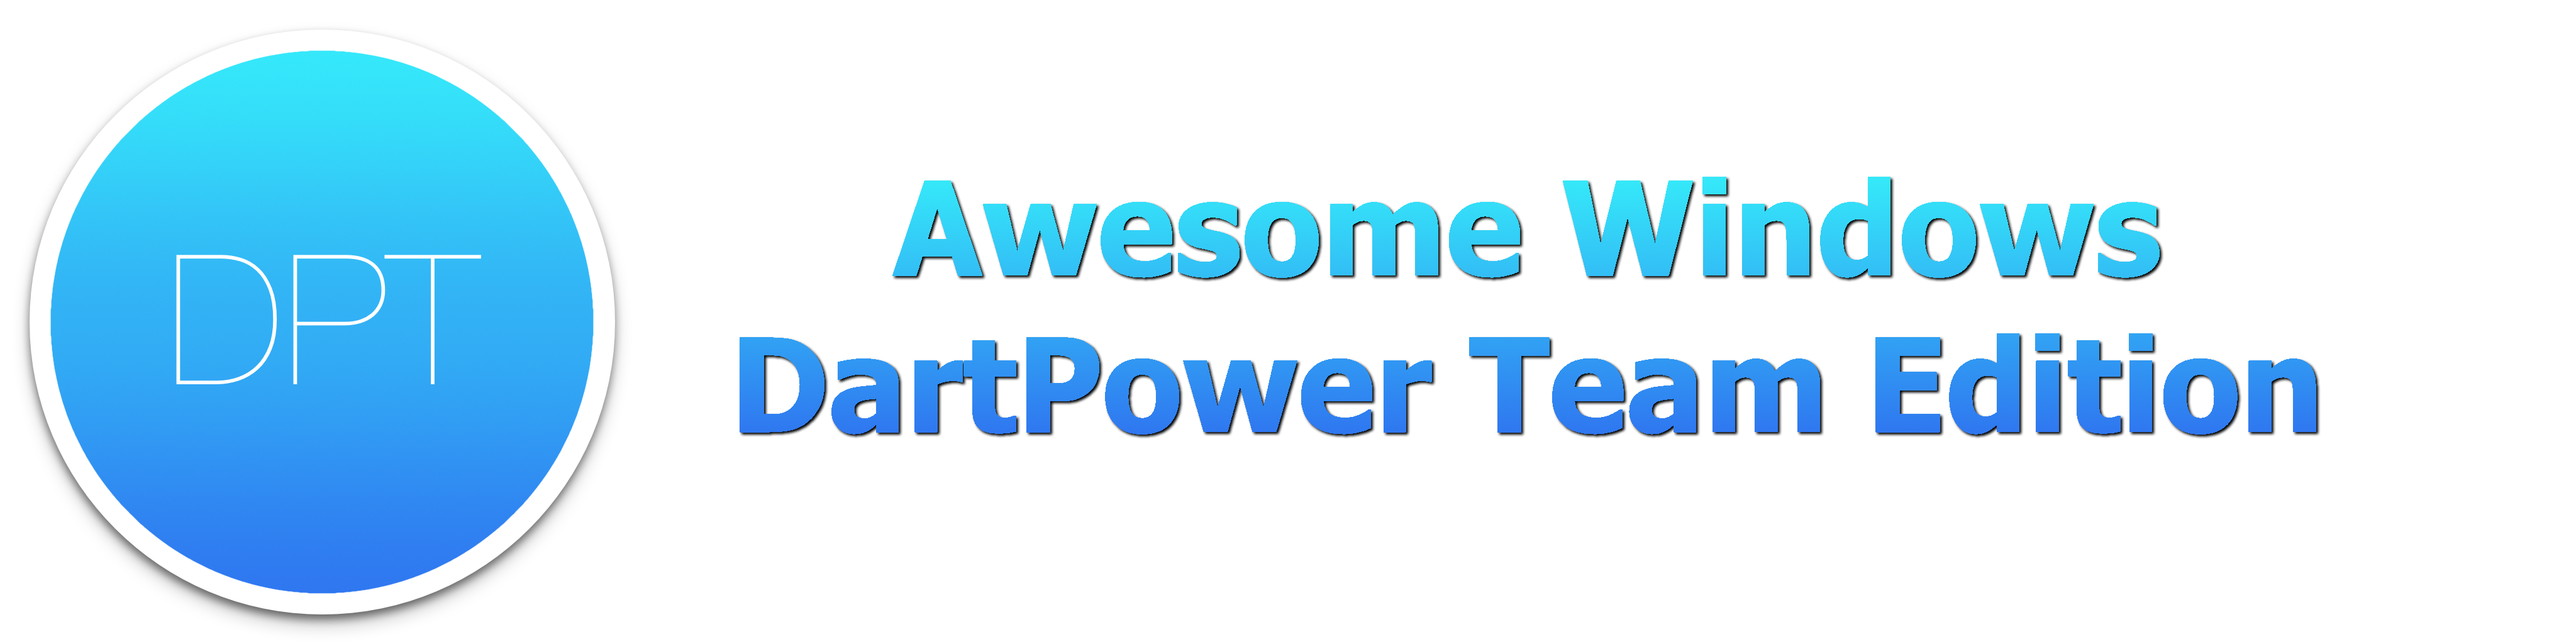 AwesomeDPT-WindowsLTSMS | 💻 Add Windows Store for Windows 10